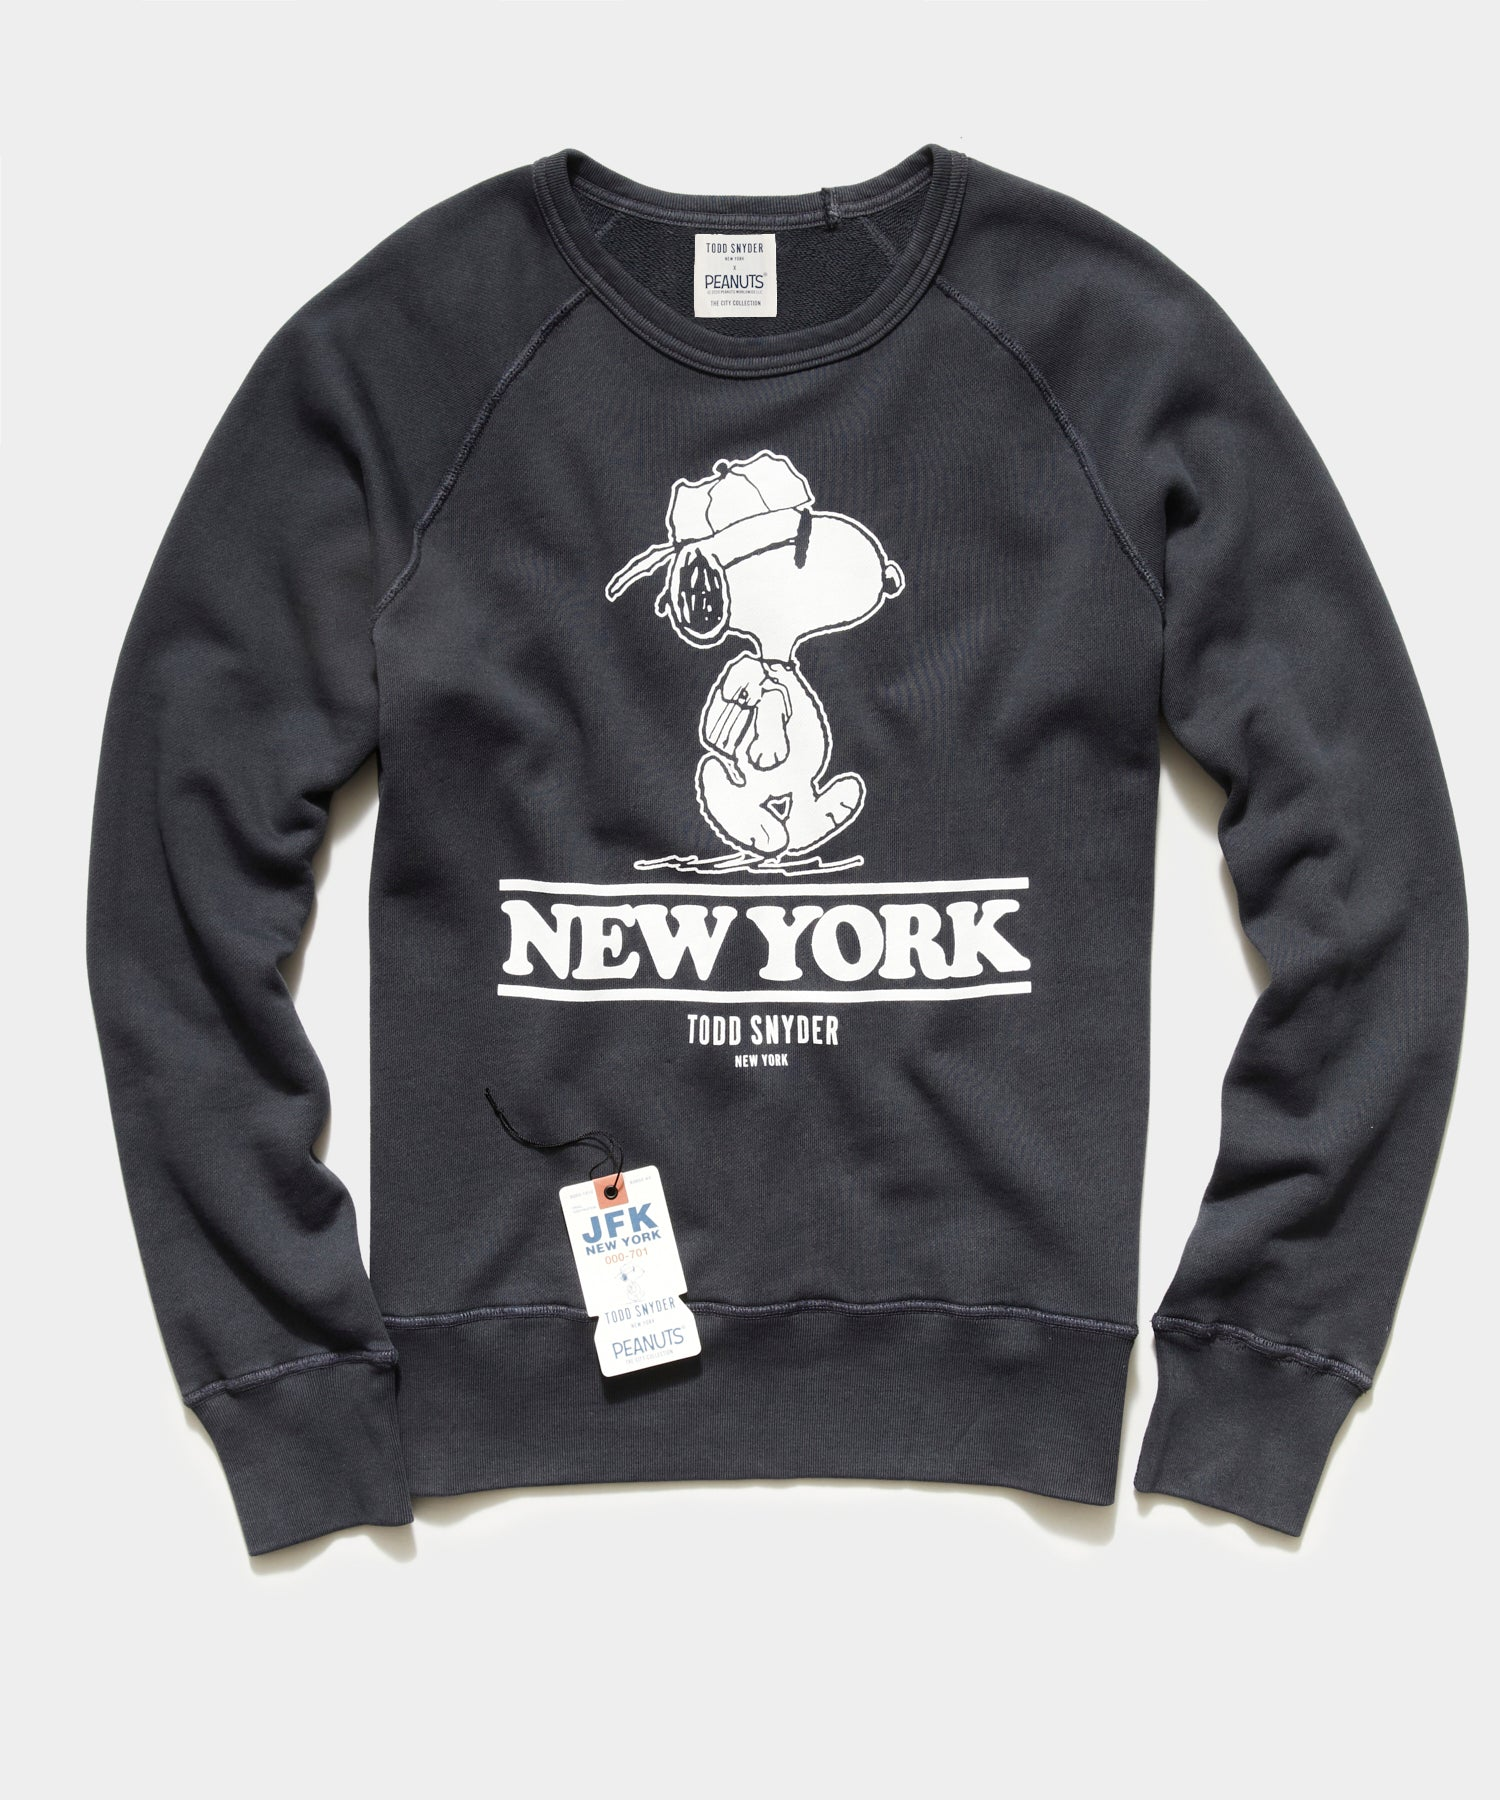 Peanuts City Collection New York Crewneck Sweatshirt in Faded Black